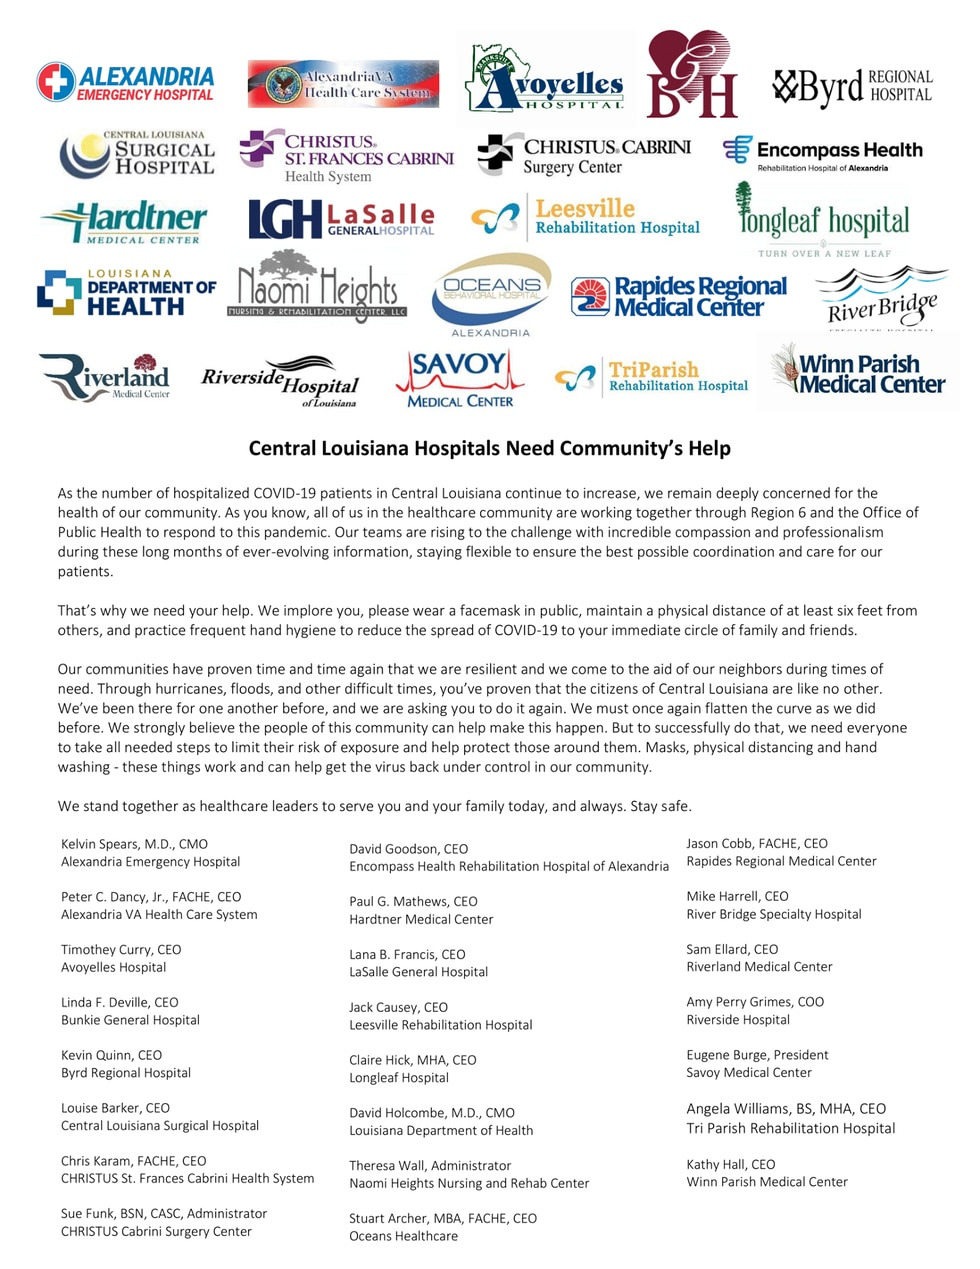 This week local hospitals published a letter asking for the public's assistance in combatting COVID-19 in Cenla.